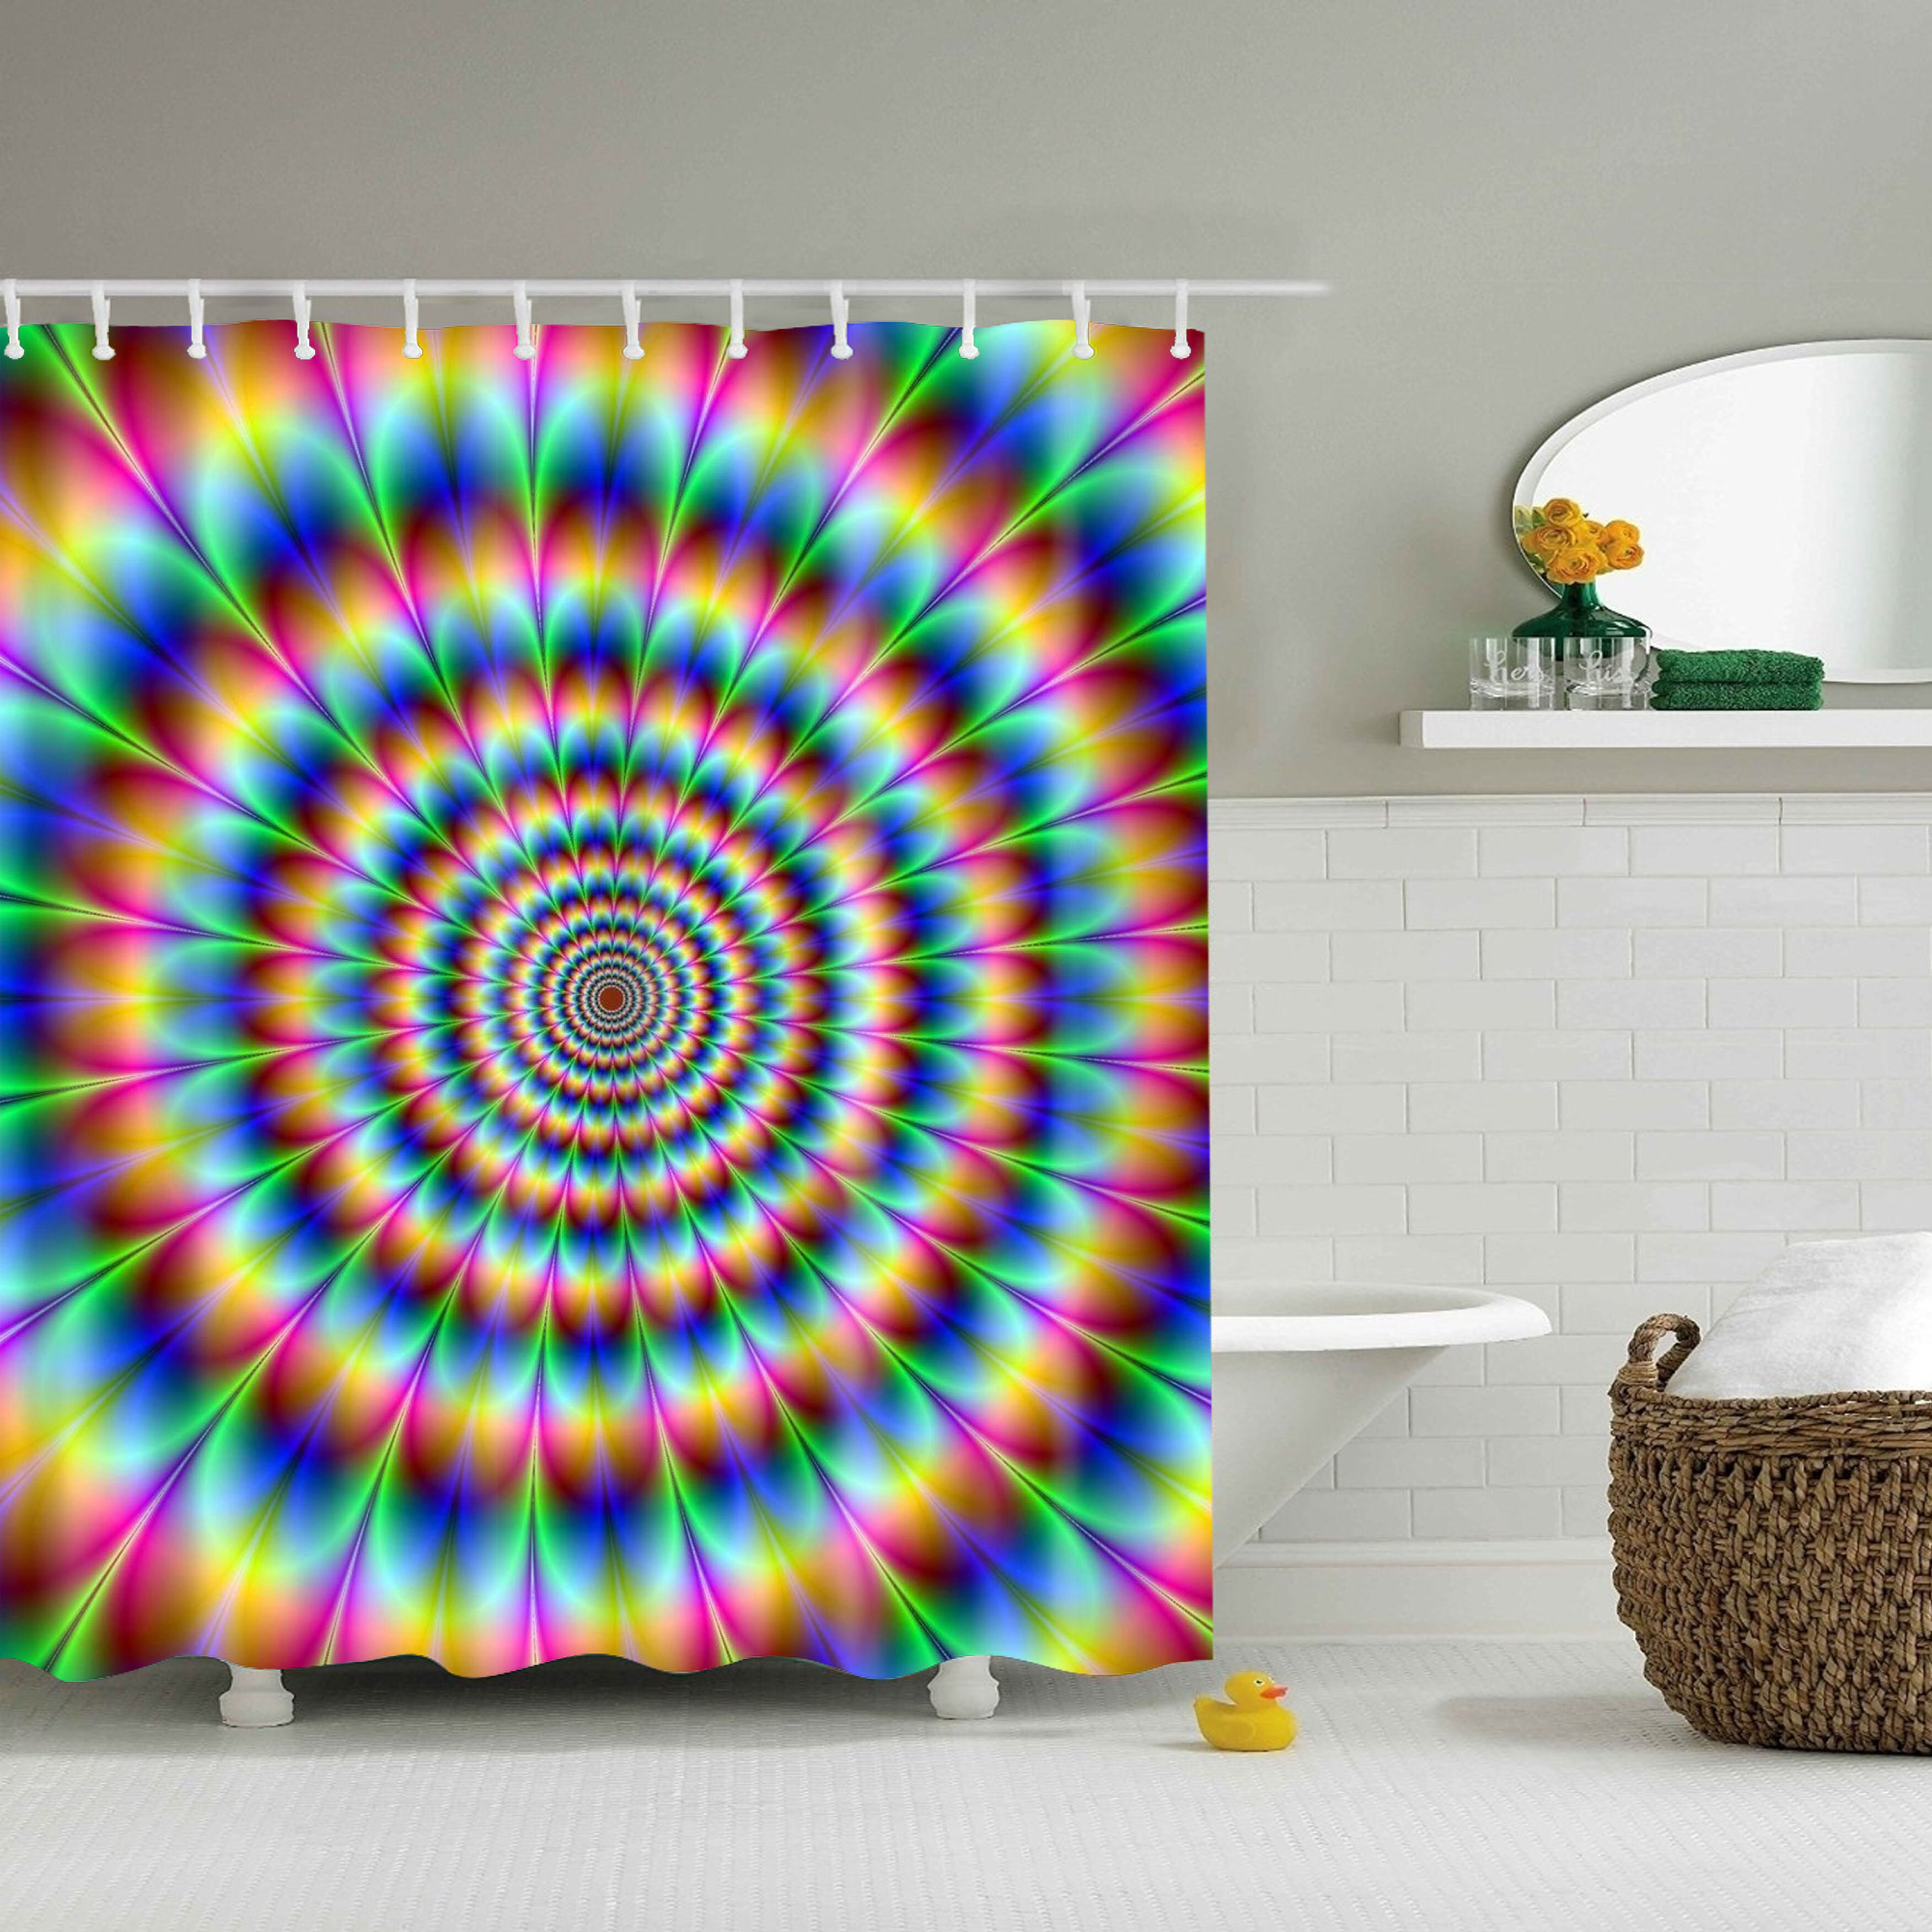 Dazzling Design Colorful Pattern Bathroom Waterproof Polyester Fabric Shower Curtain